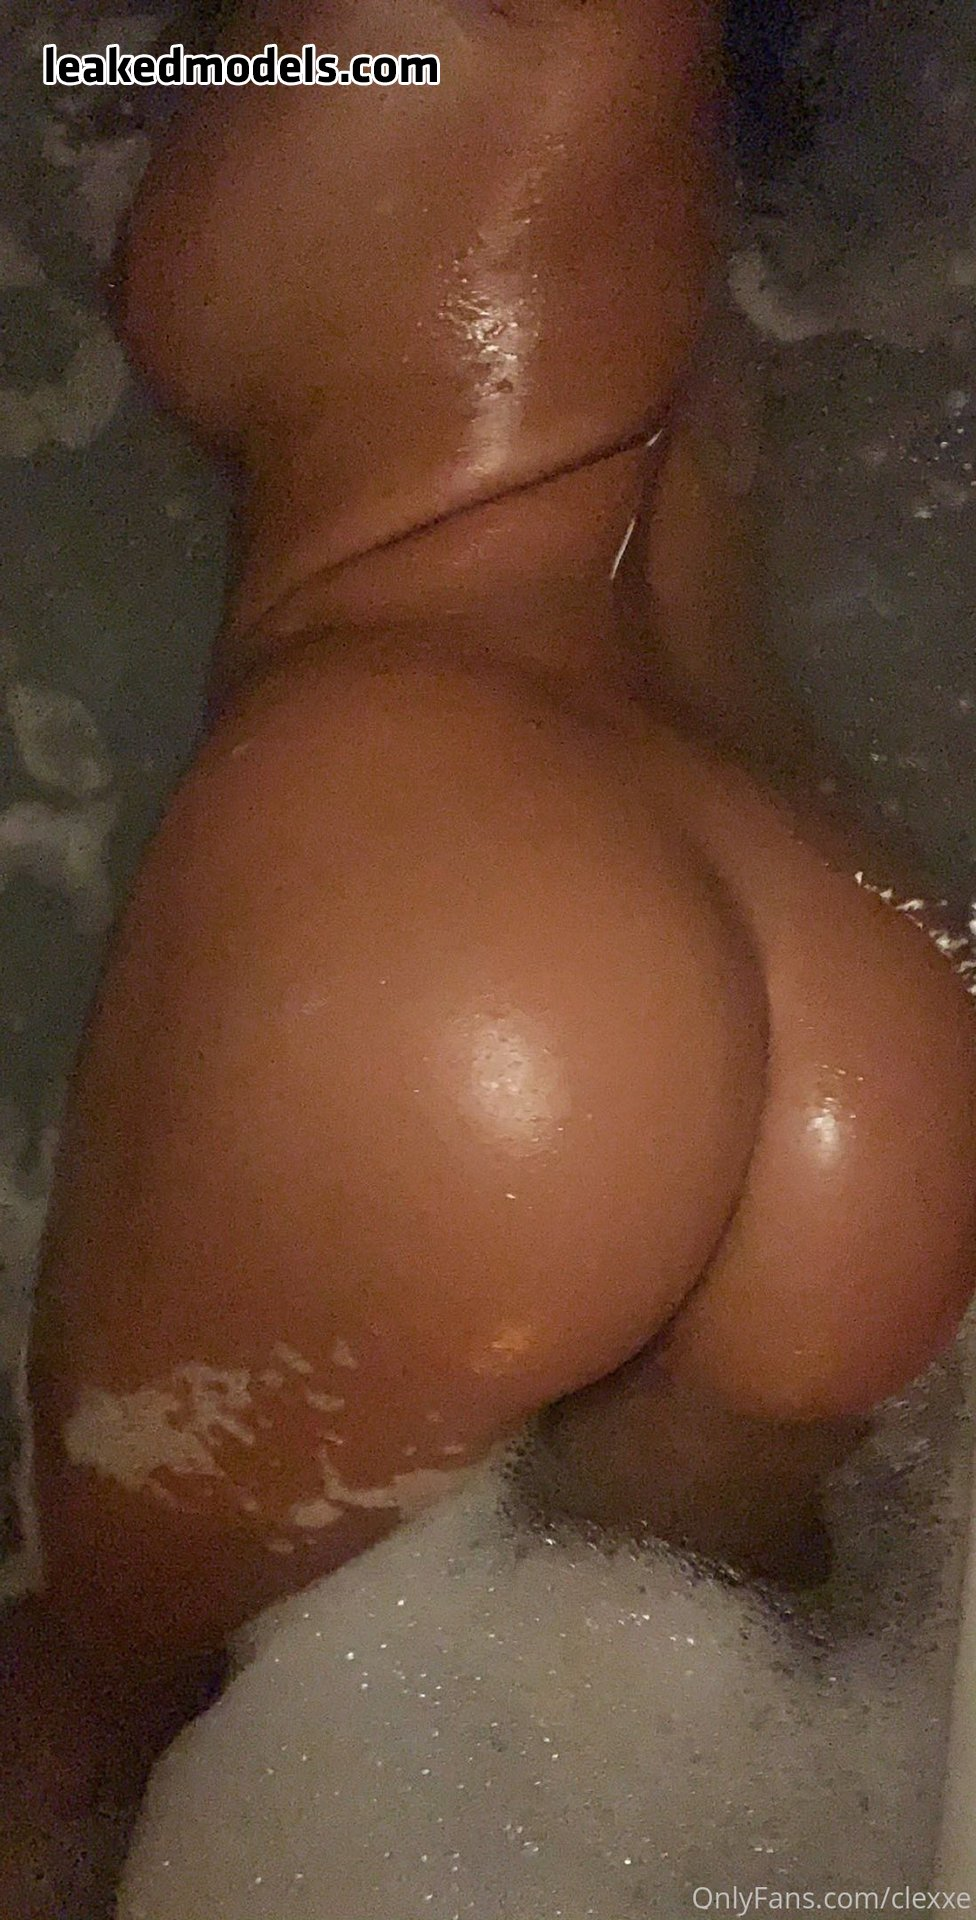 clexxe OnlyFans Nude Leaks (35 Photos)